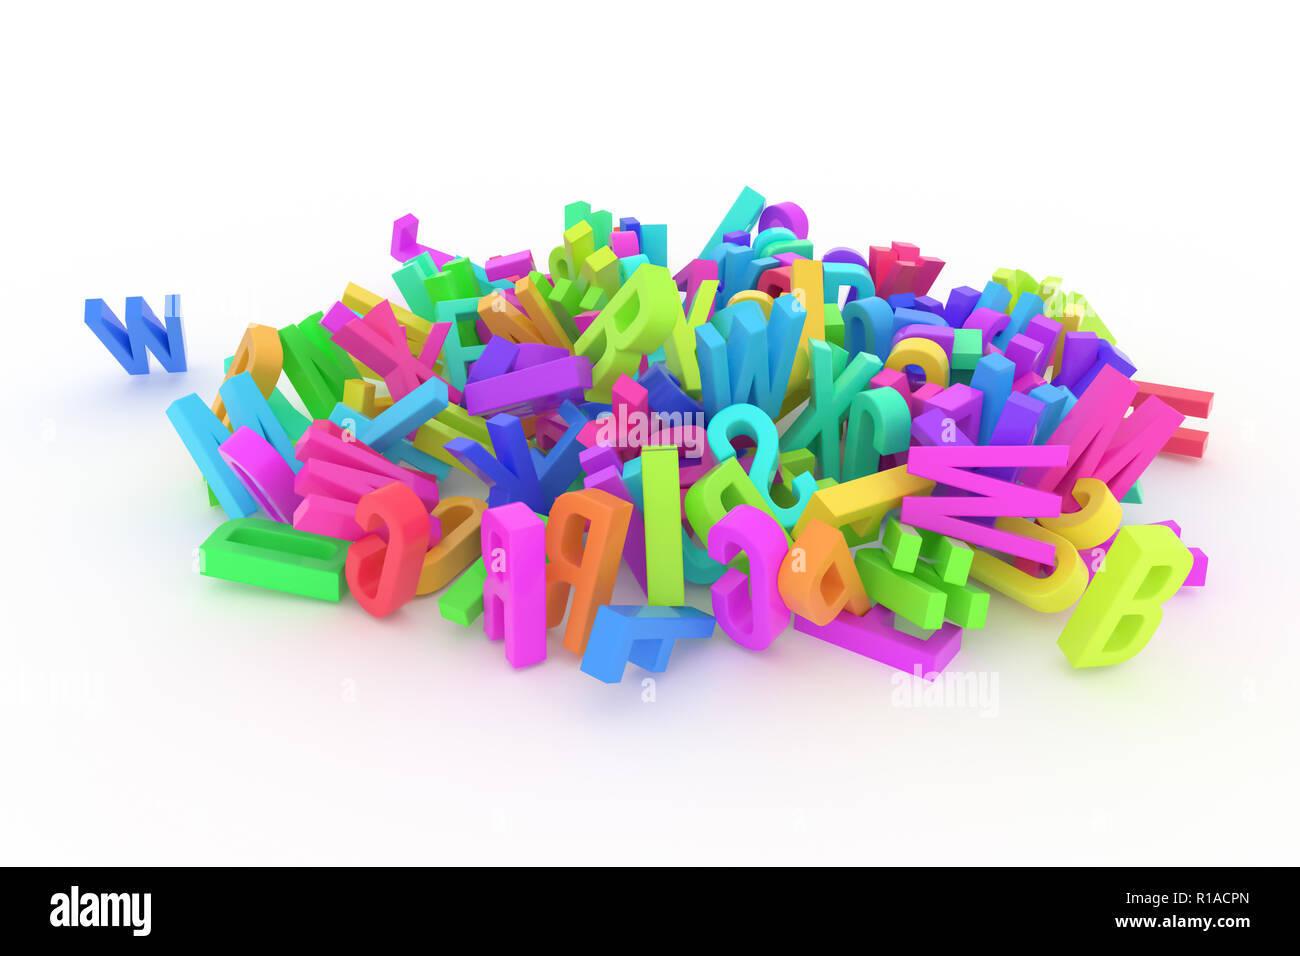 Background abstract CGI typography, good for design, alphabet, letter of ABC. Colorful 3D rendering. Modeling, mess, creativity & backdrop. - Stock Image